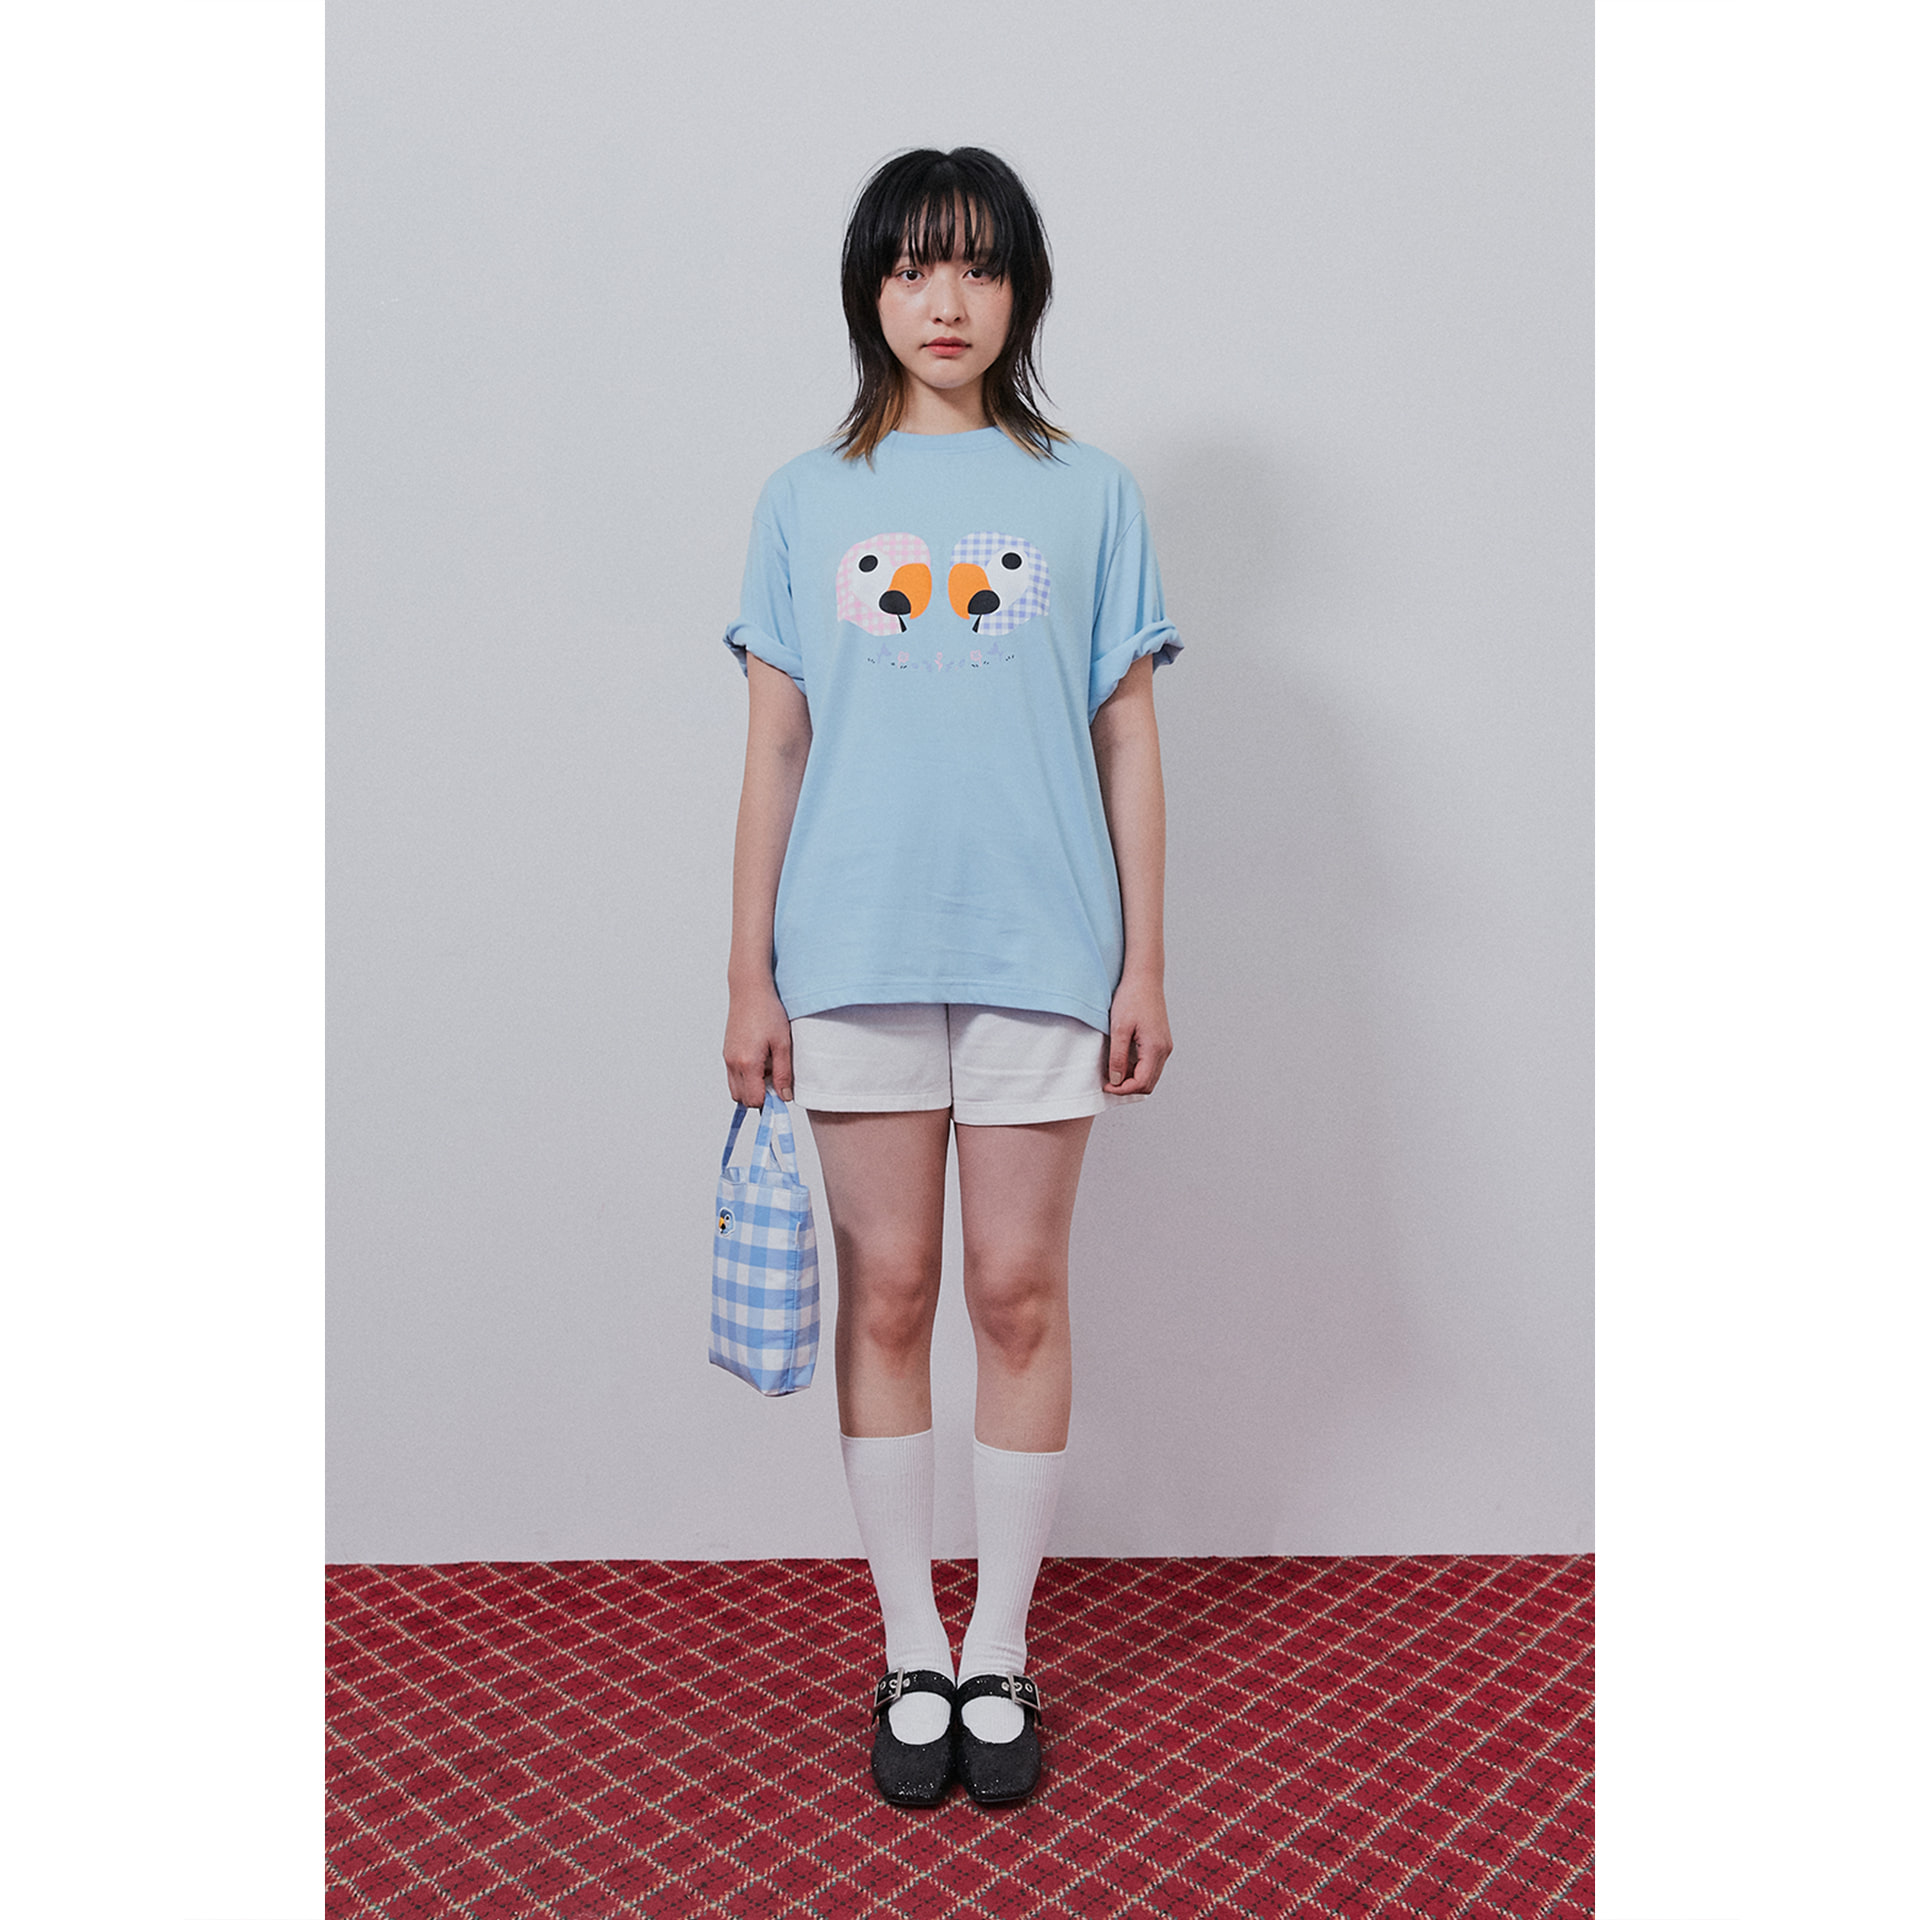 KANCO CHECK TEE sky blue